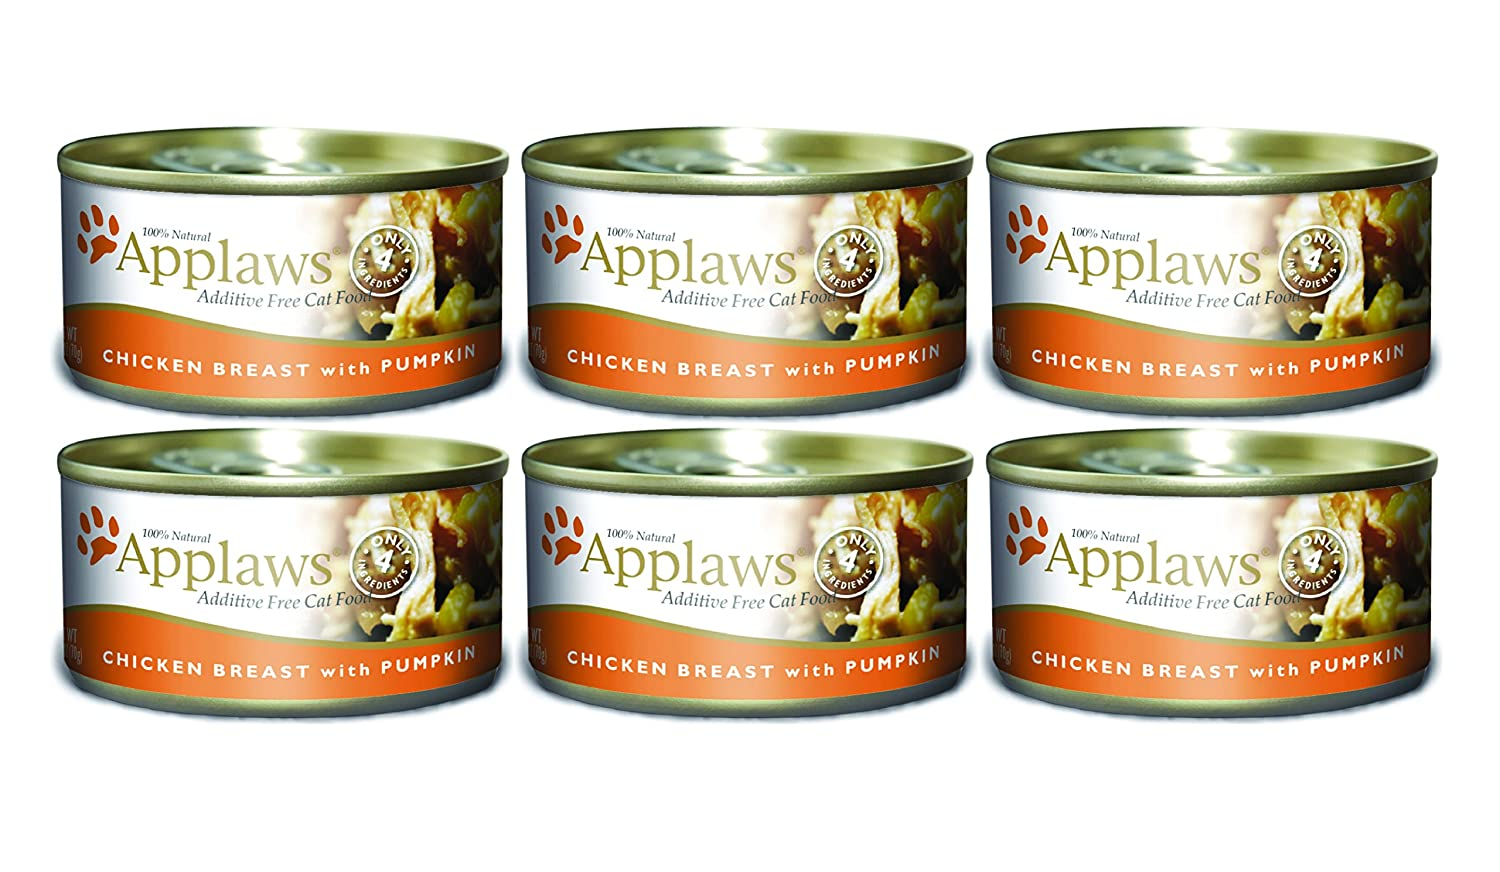 Amazon.com : Applaws Chicken Breast with Pumpkin Canned Cat Food 2.47 oz x 6 cans : Pet Supplies